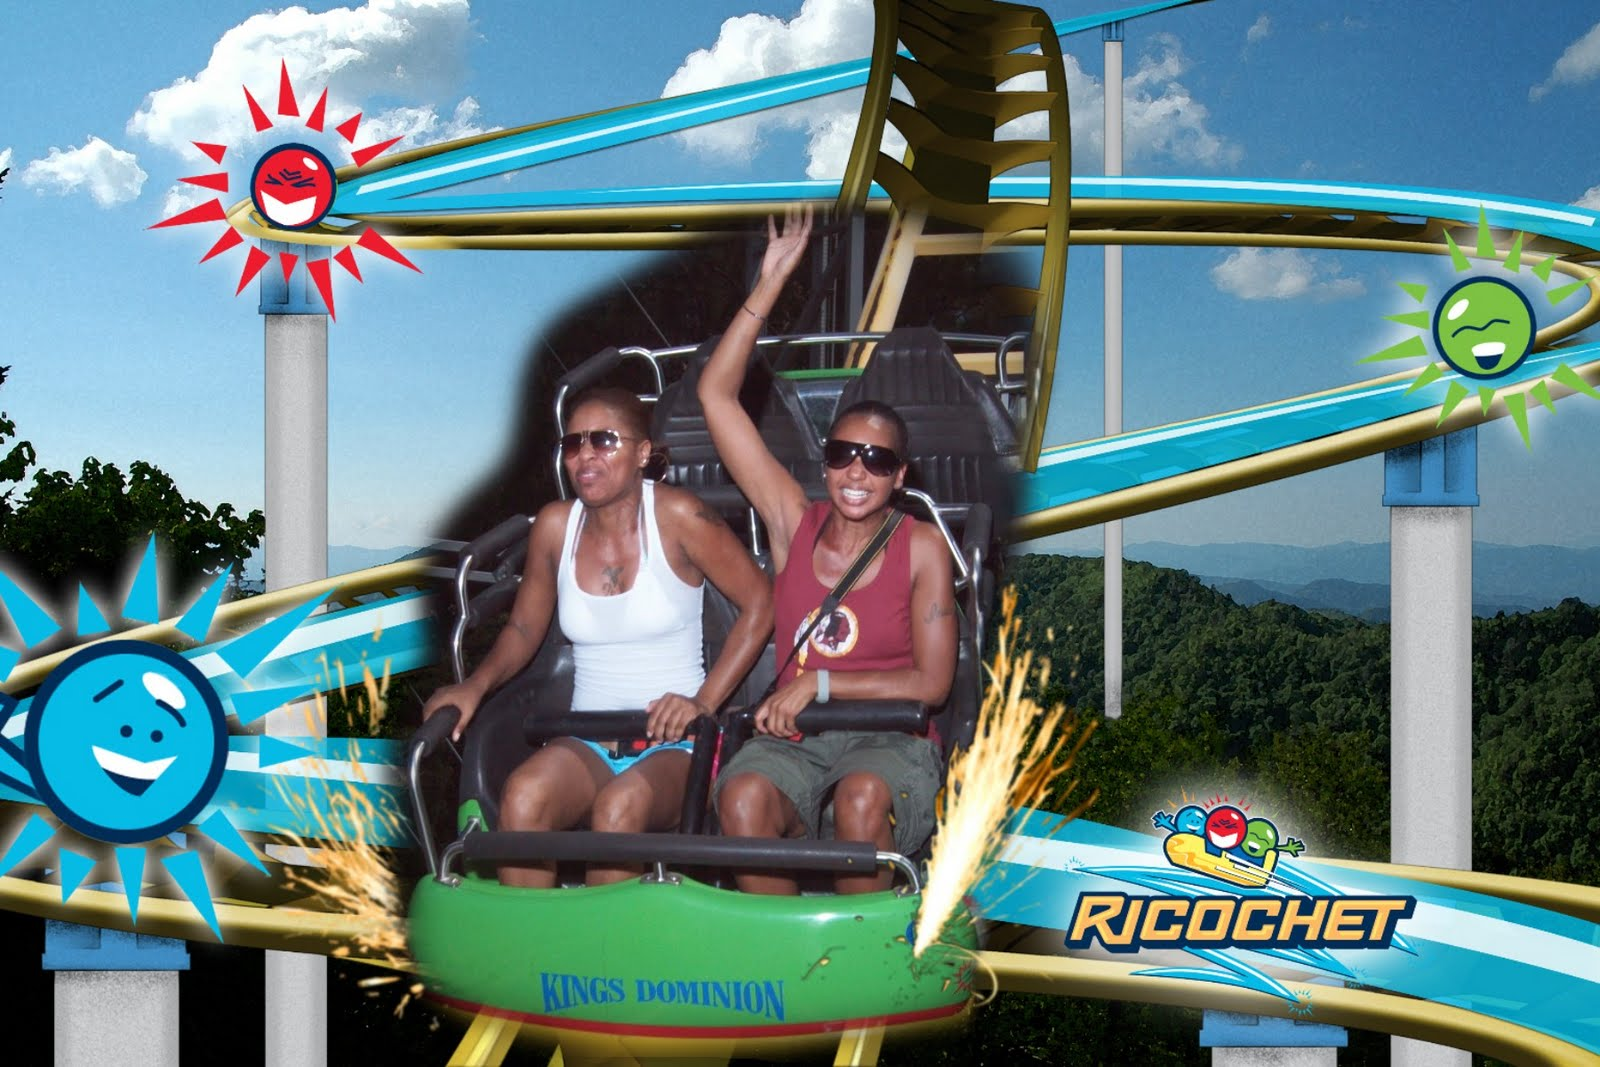 paige seven kings dominion oh yeah